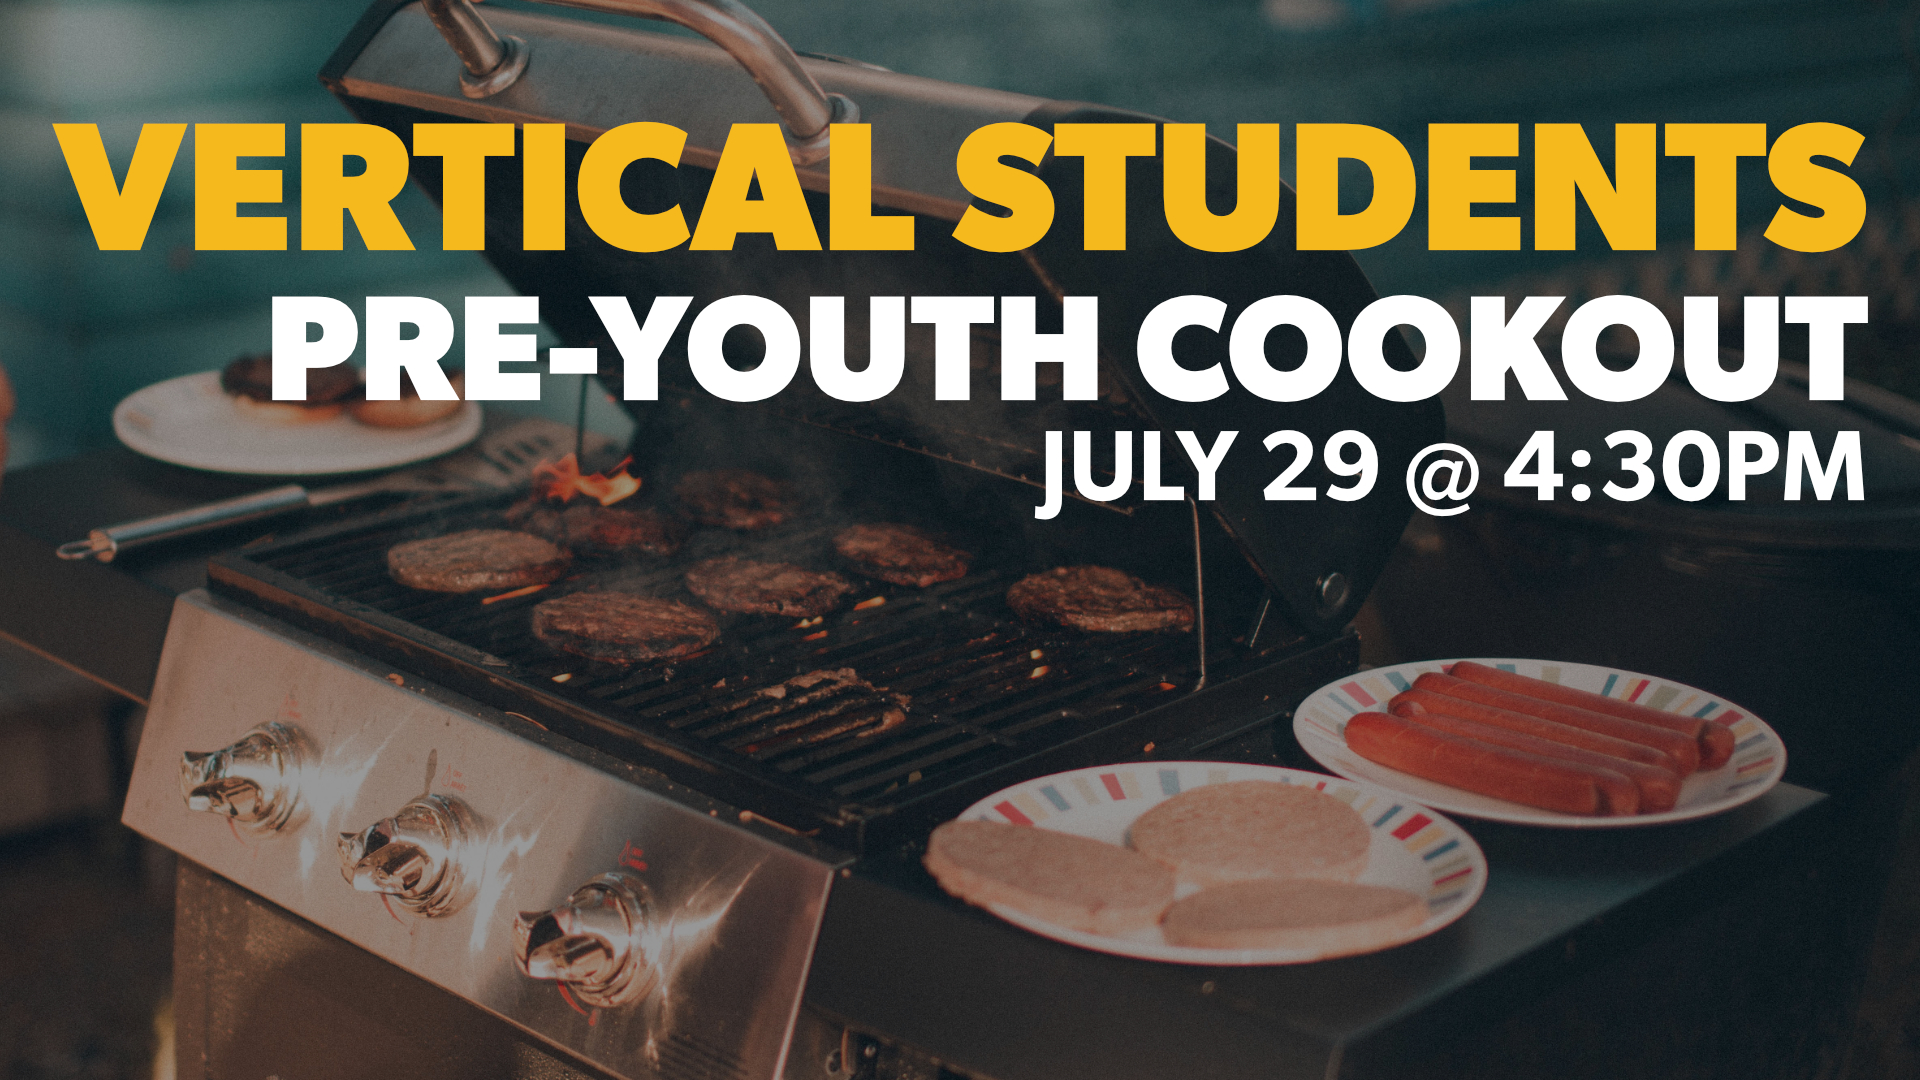 Vertical Students Pre-Youth Cookout.jpg